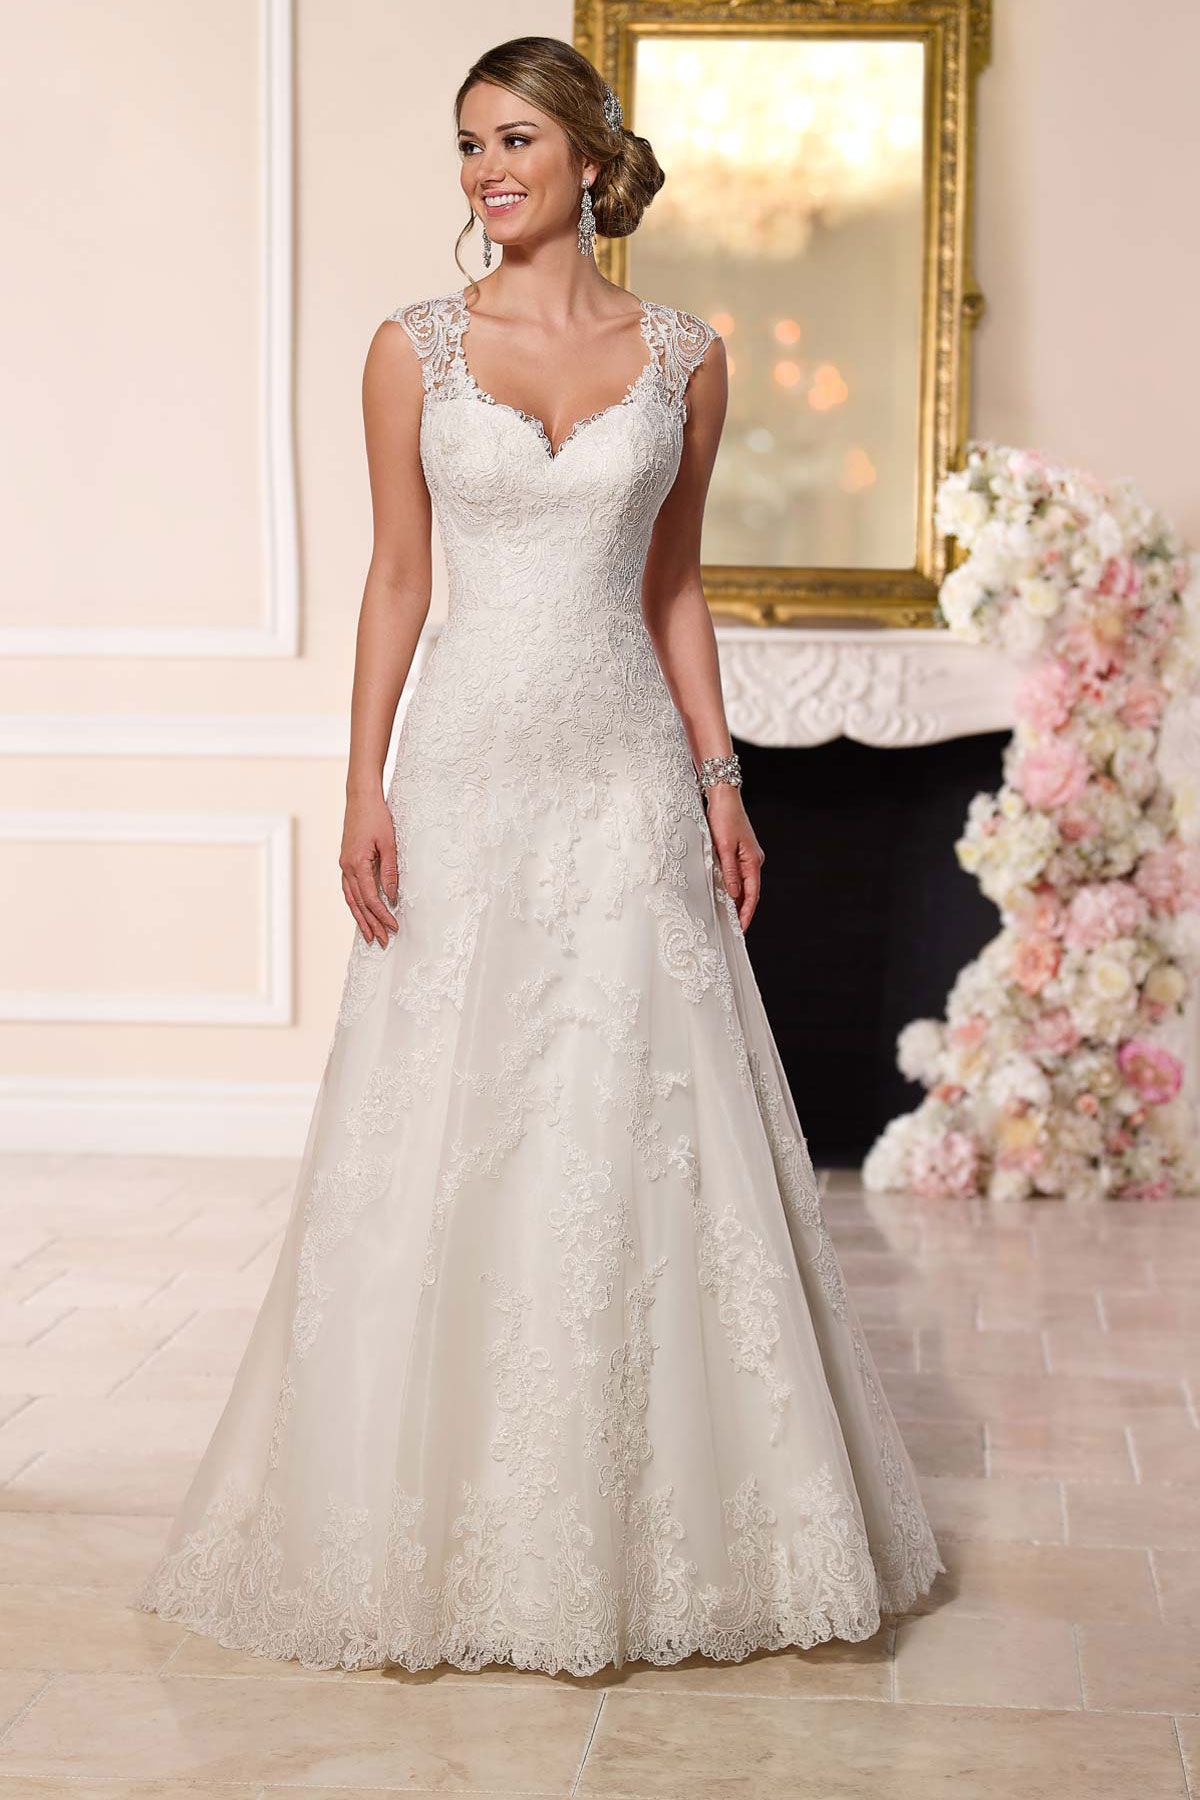 Lace cap sleeve a line wedding dress  Stella York  Barton A line wedding gown from Stella York boasts